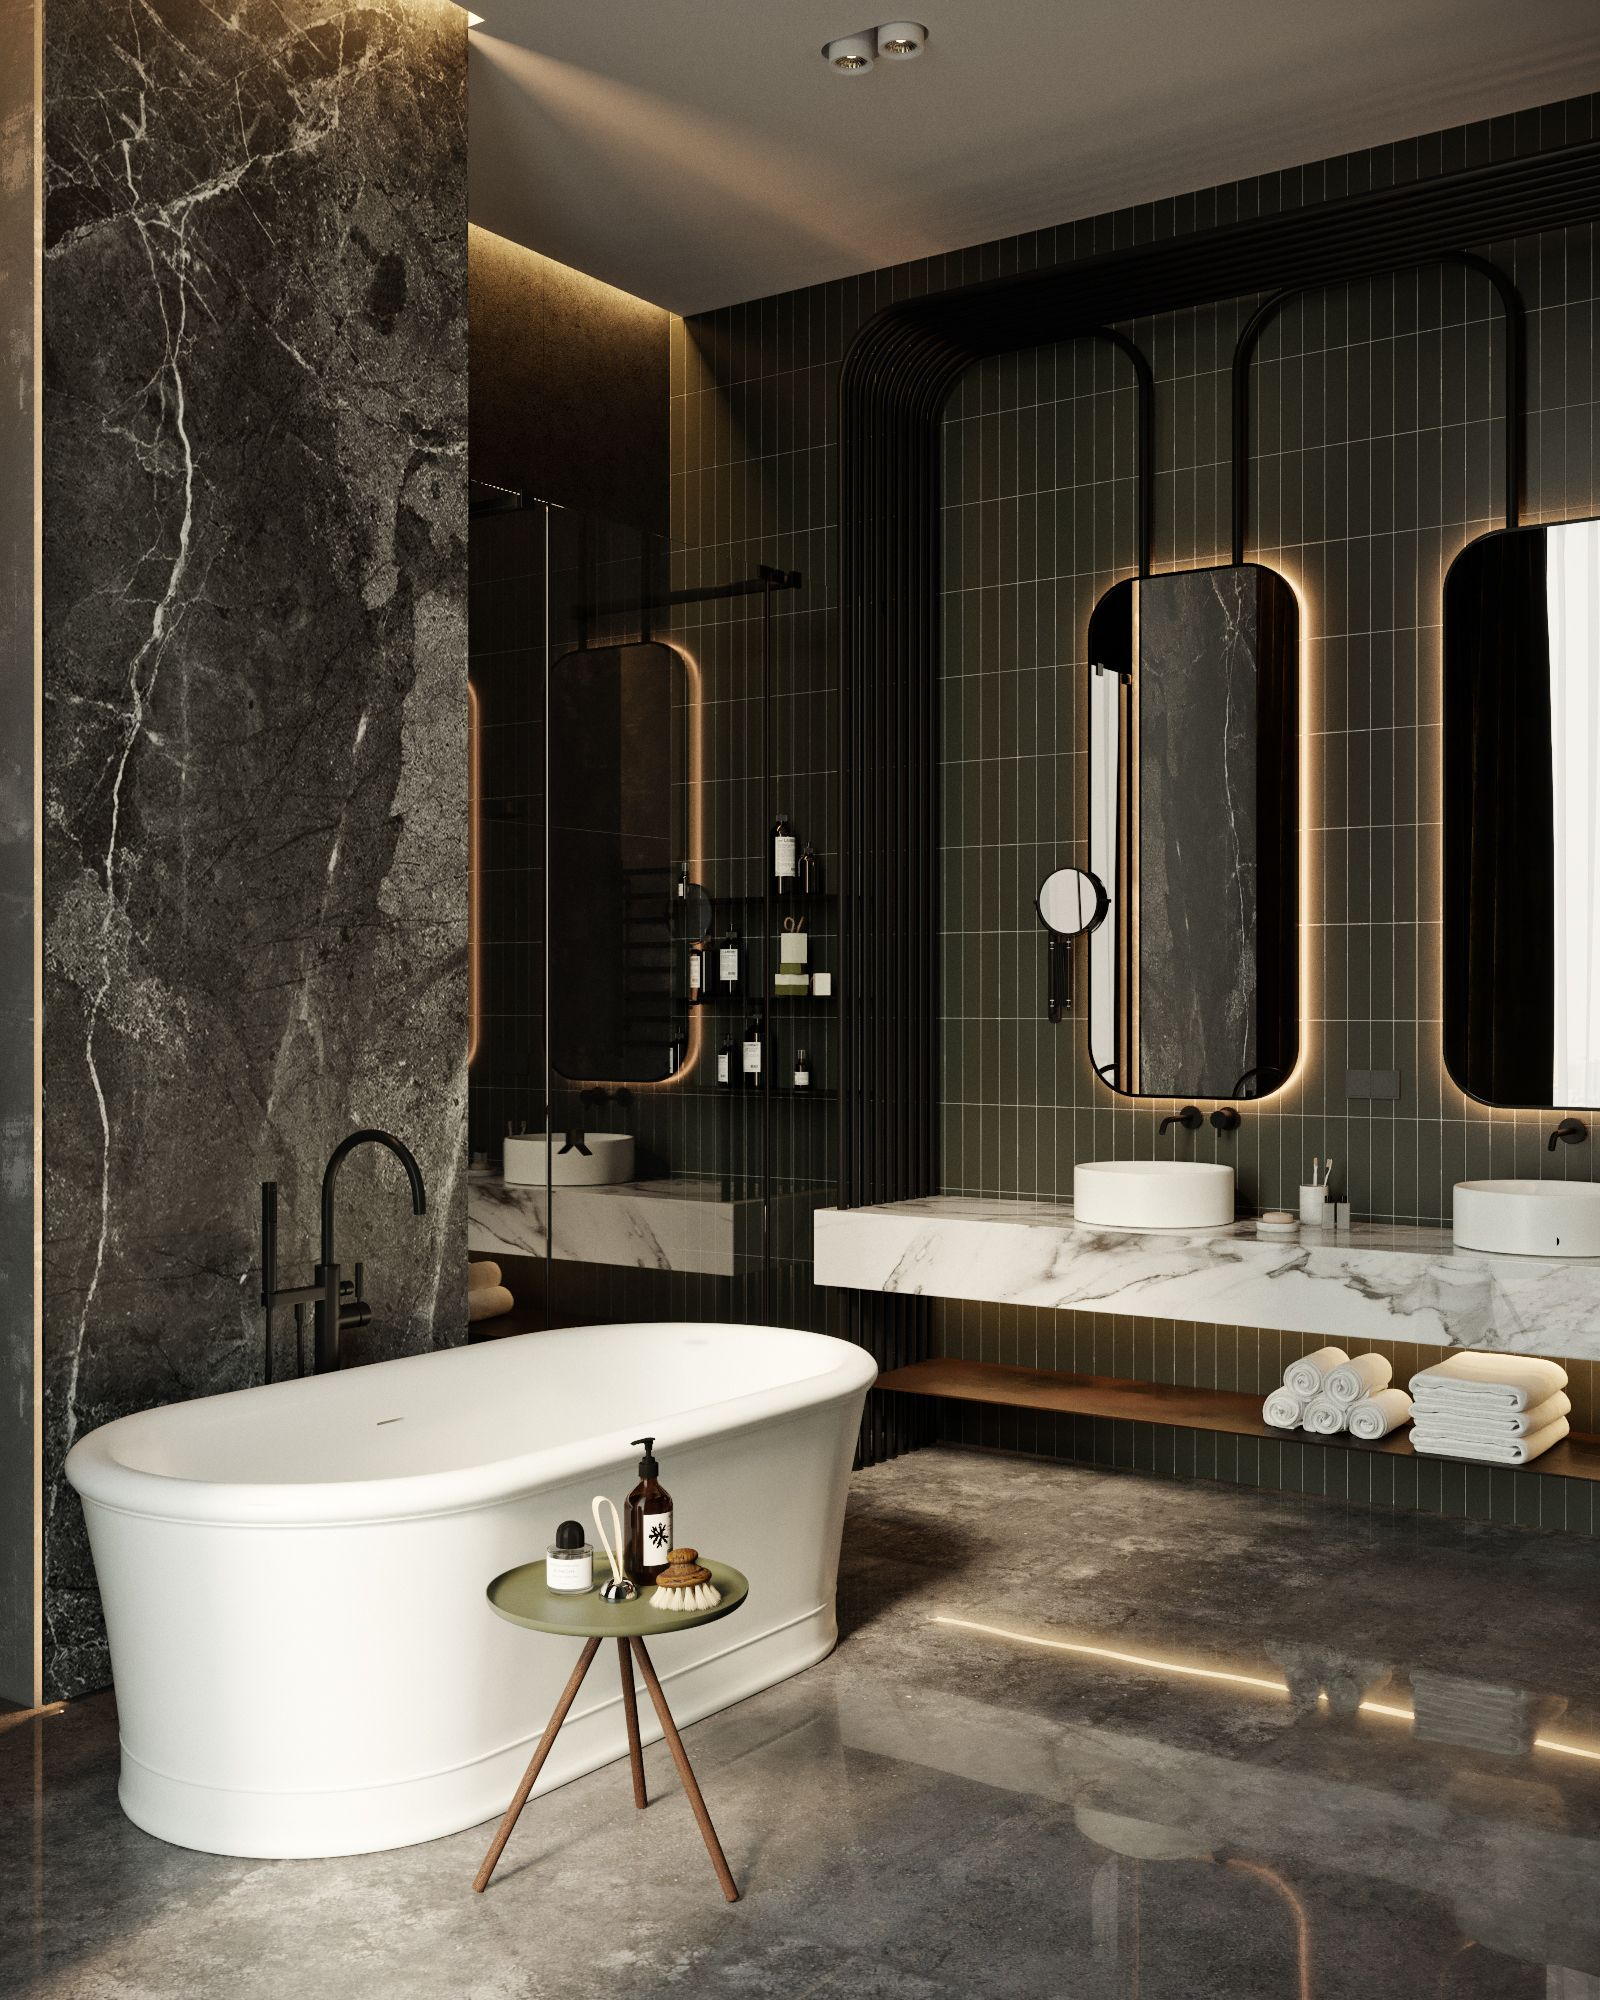 Bathrooms Interior Design Impressive Inspiration